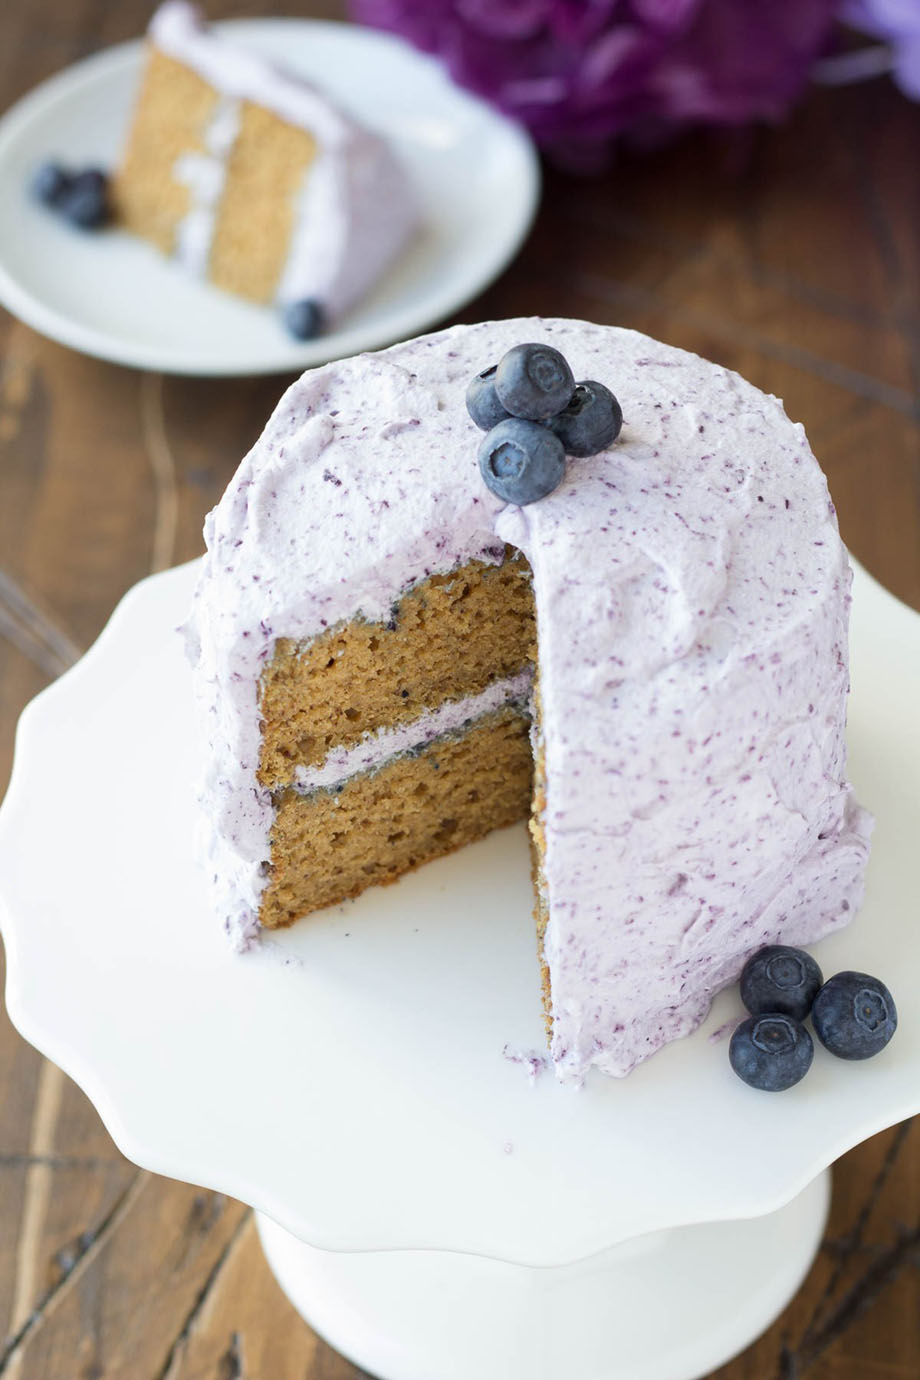 Whole Wheat Banana Cake with Blueberry Whipped Cream Frosting